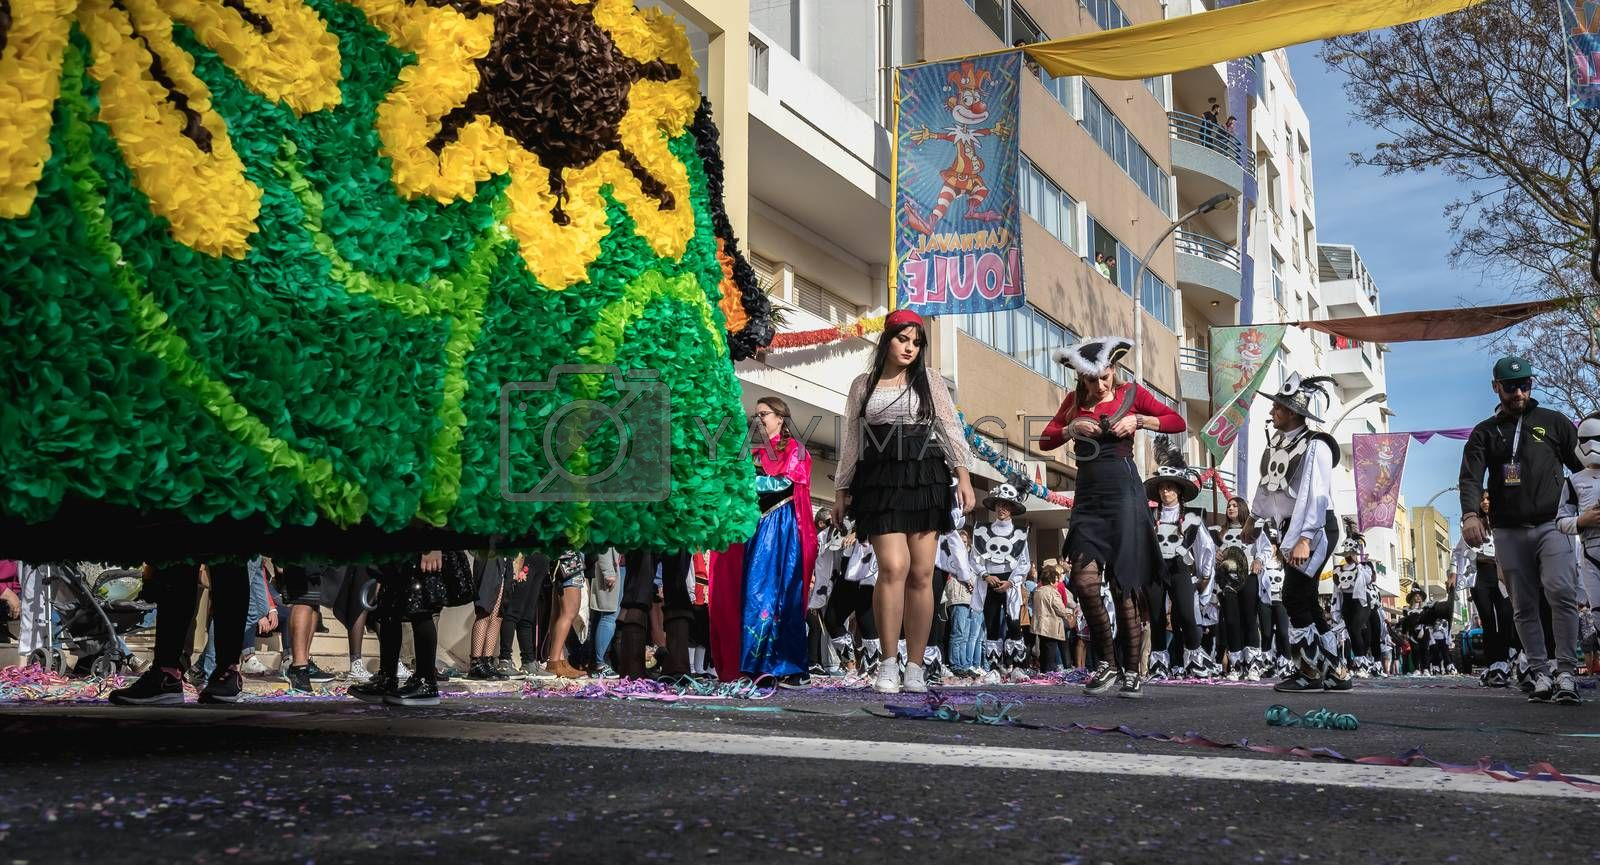 Loule, Portugal - February 25, 2020: dancers parading in the street in front of the public in the parade of the traditional carnival of Loule city on a February day